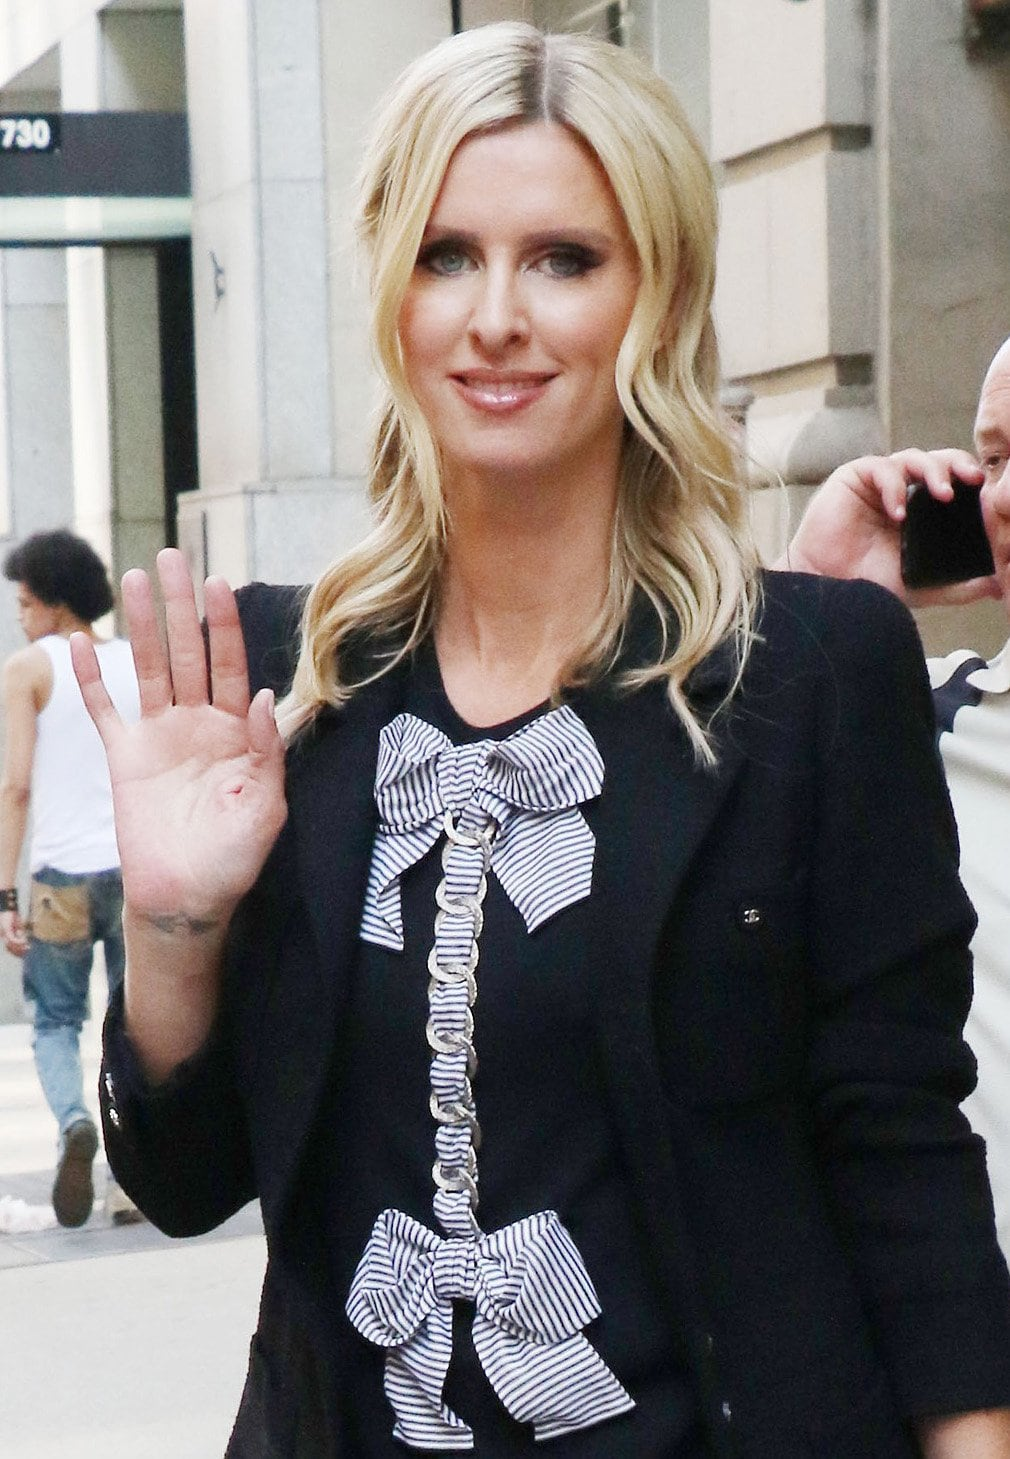 Nicky Hilton wears nude lipgloss and styles her blonde hair in half-up, half-down soft curls